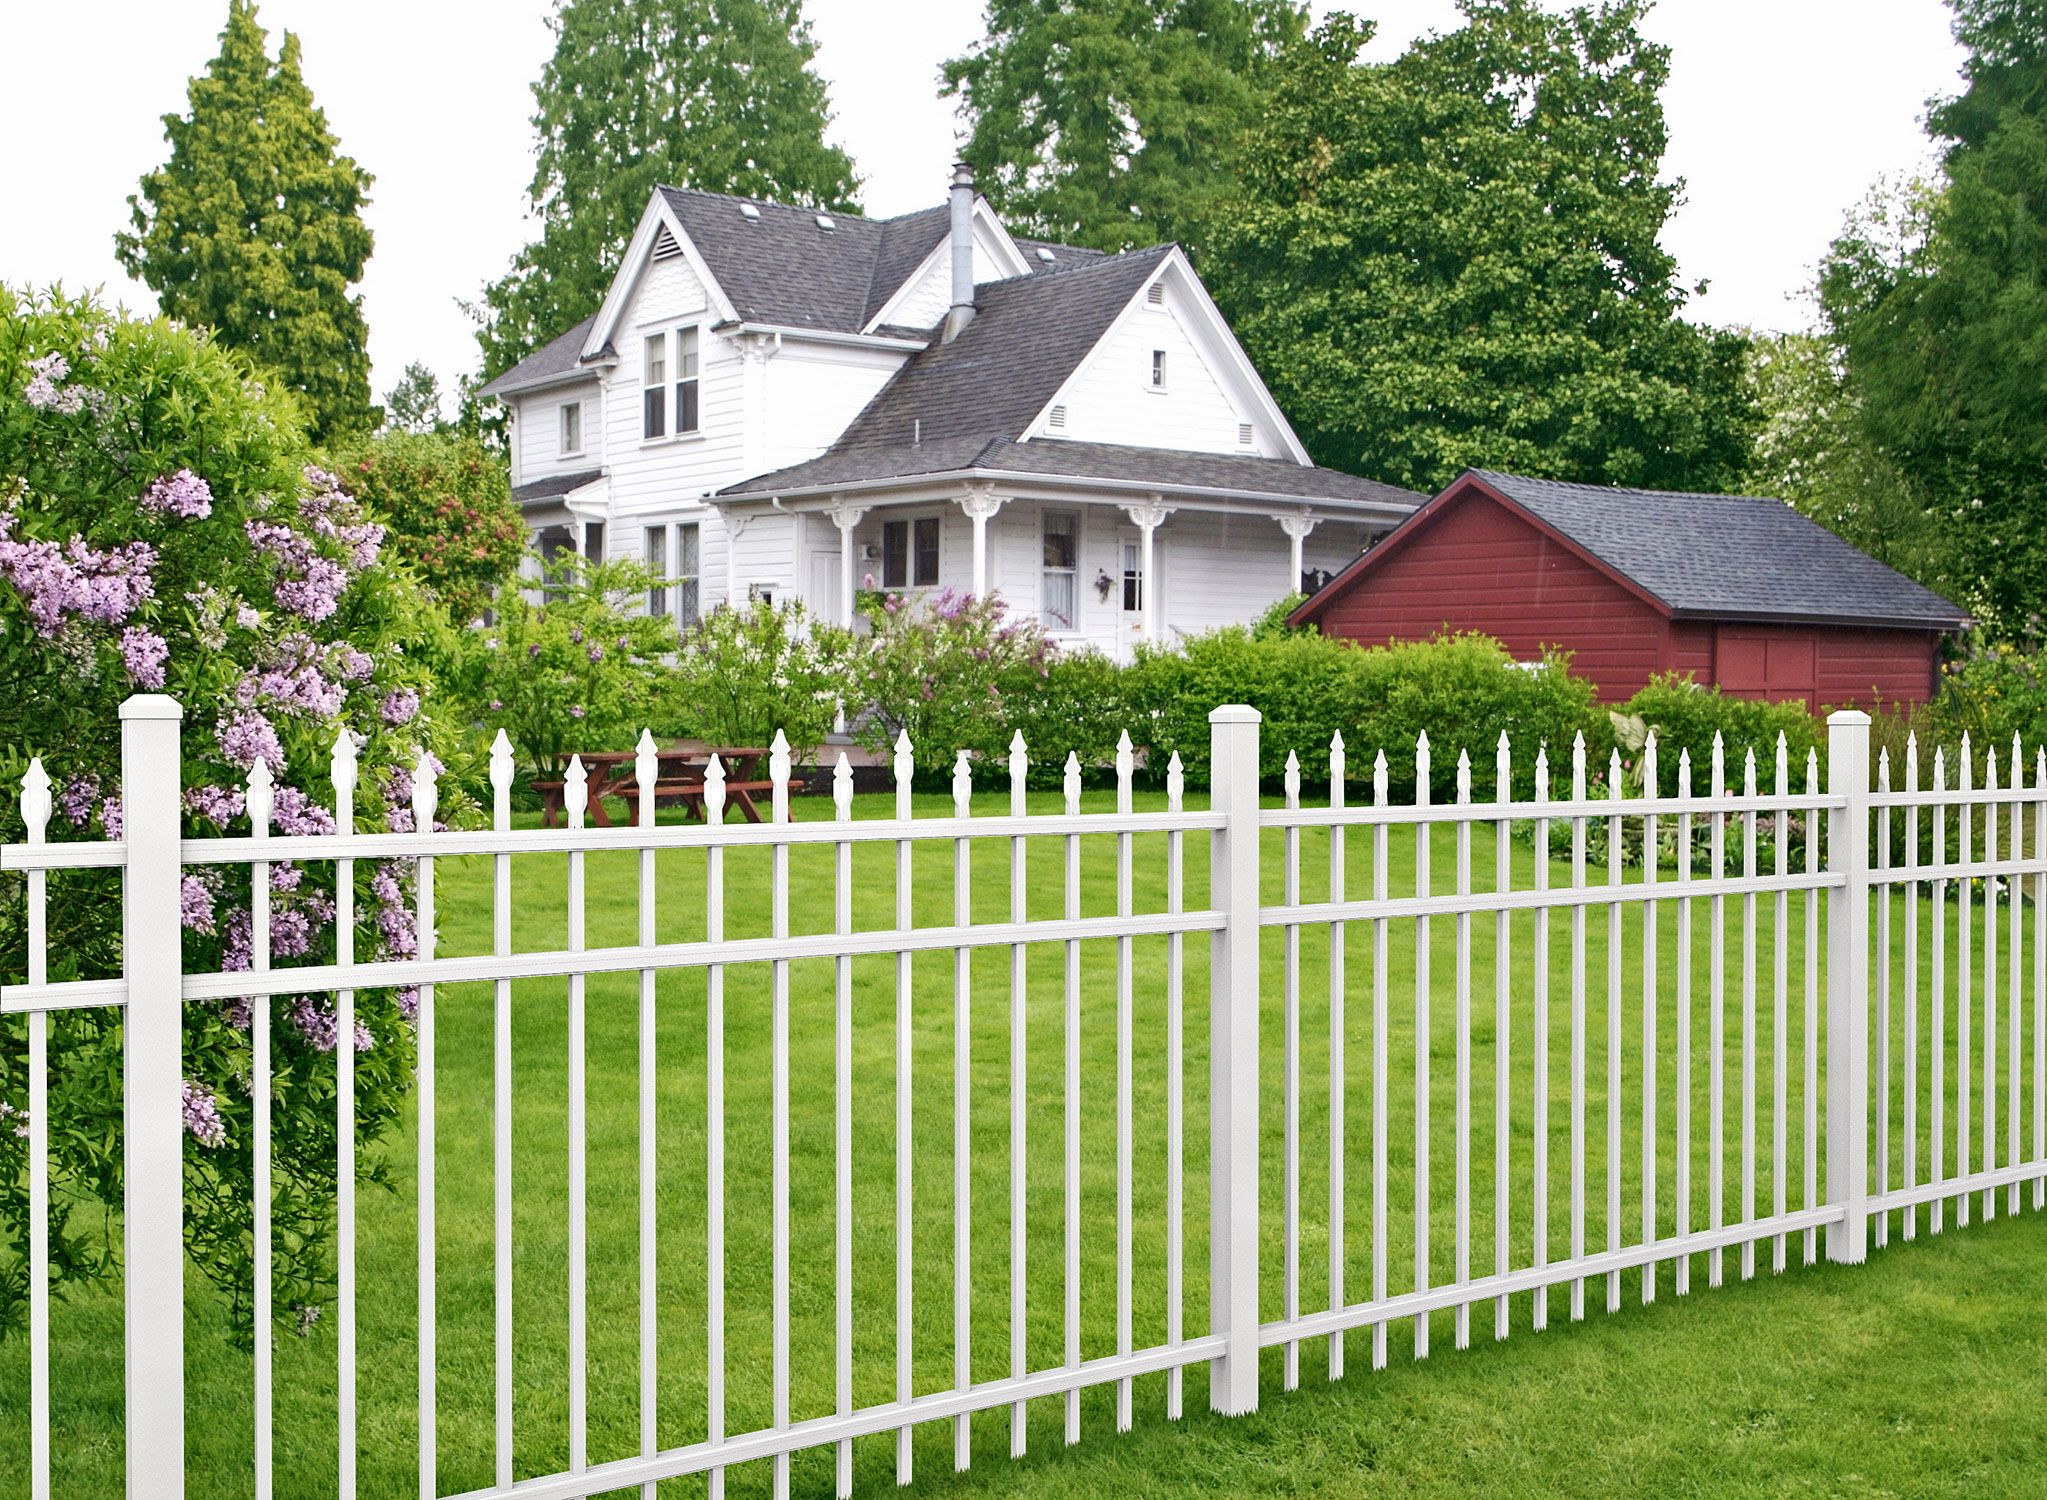 60 Best Ideas For Different Types Of Garden Fence Panels Backyard Fences Fence Landscaping Garden Fence Panels